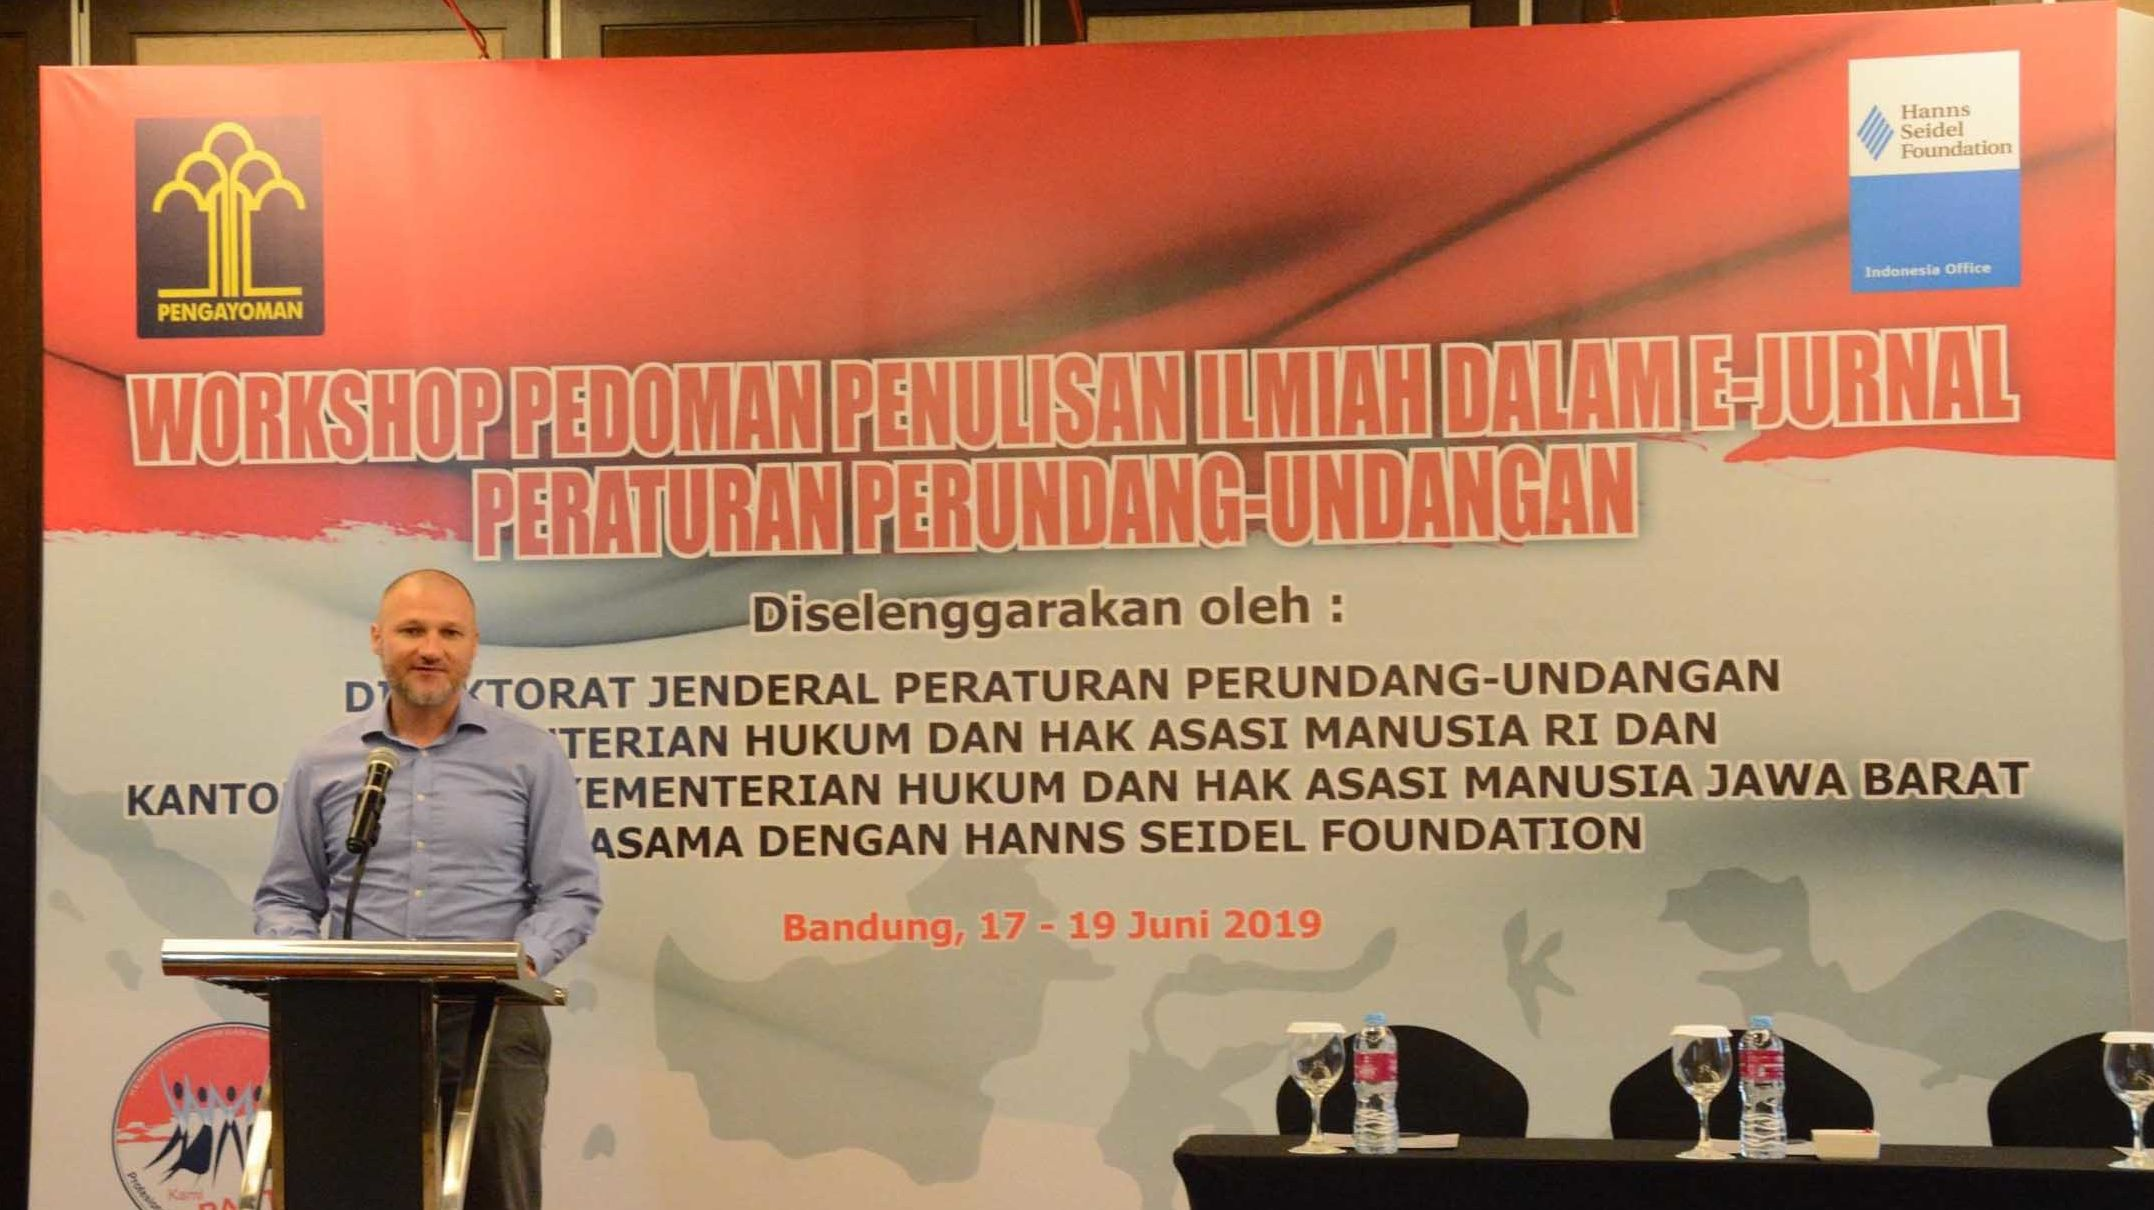 Dr. Daniel Heilmann, Resident Representative of HSF Indonesia, delivers the opening remarks